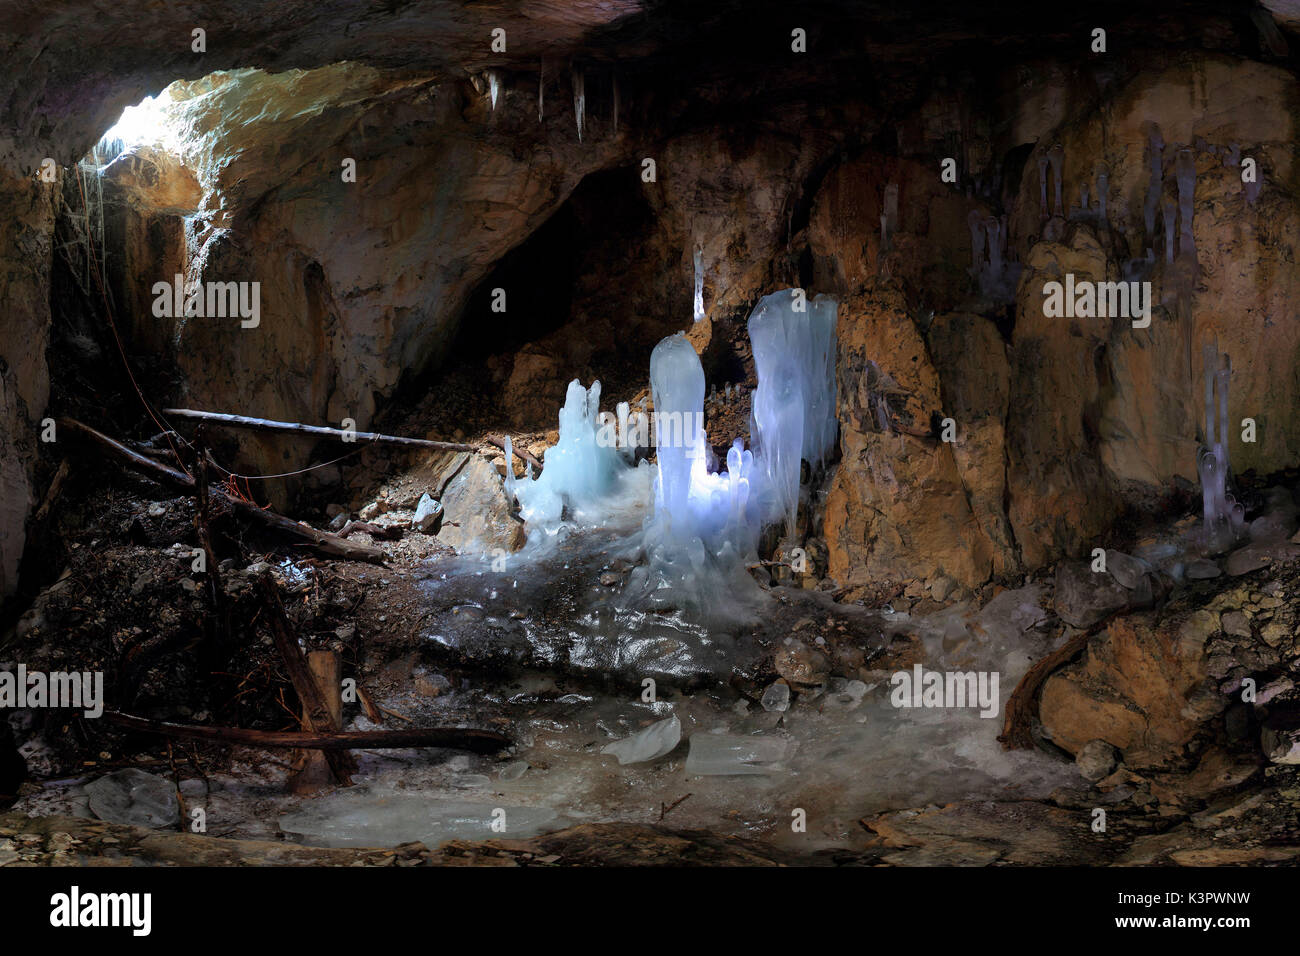 Full panoramic inside the Moncodeno Cave with its peculiar ice sculptures, Grigna Settentrionale, Province of Lecco, Lombardy, Italy - Stock Image